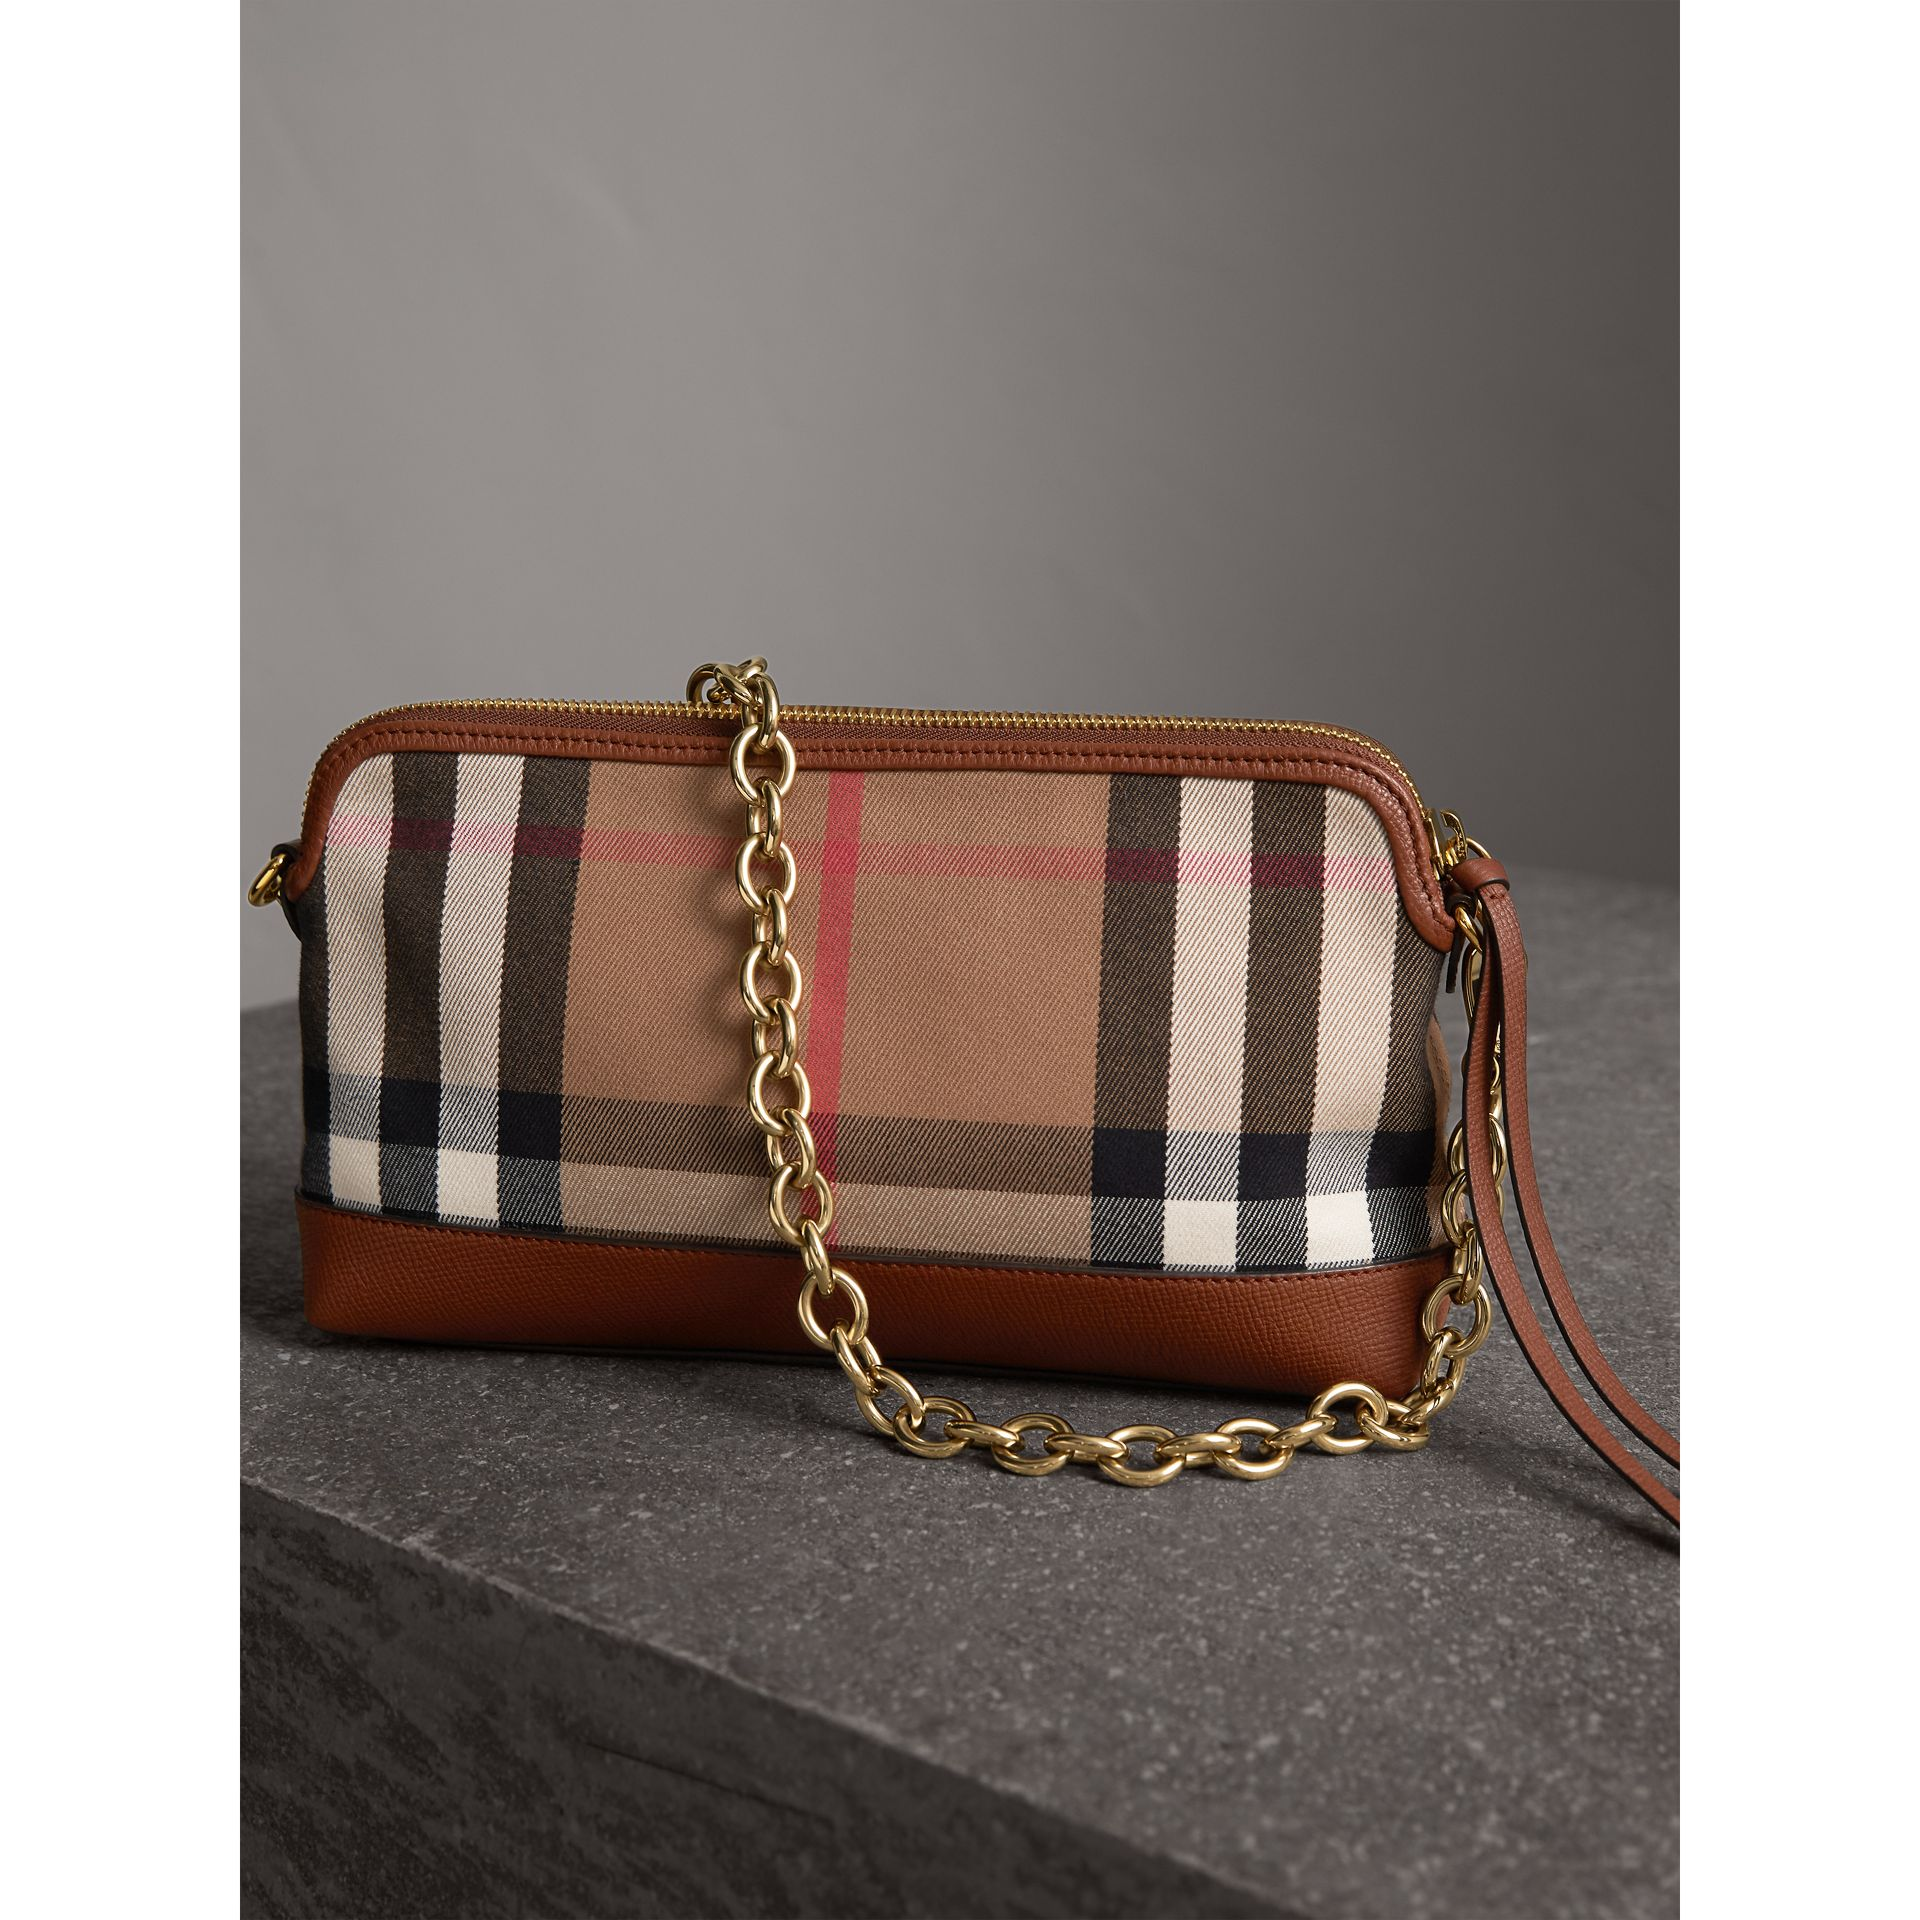 House Check and Leather Clutch Bag in Tan - Women | Burberry Canada - gallery image 5